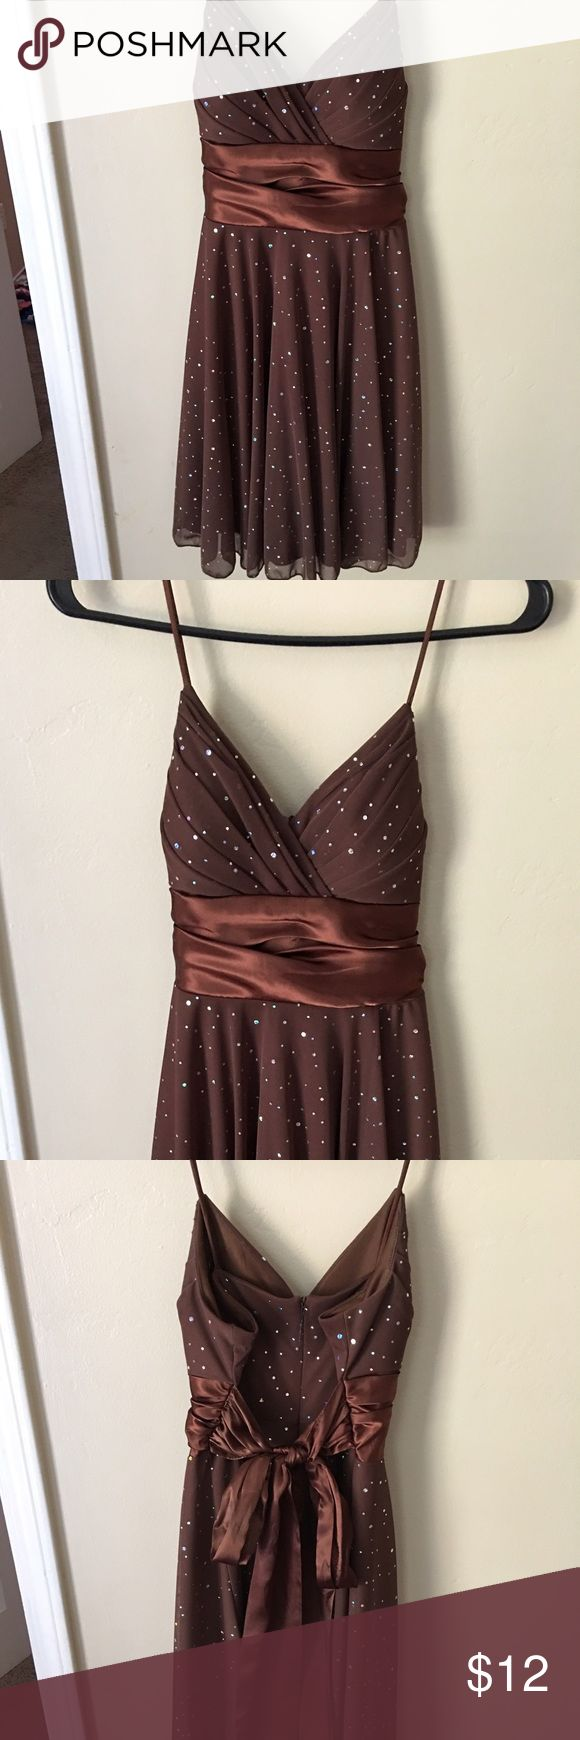 Sparkle brown mini dress Brown mini dress! Fitted chest tie to cinch in waist flowy bottom length above the knee mid thigh. Simple but cute. Give me your best offer! Dresses Midi